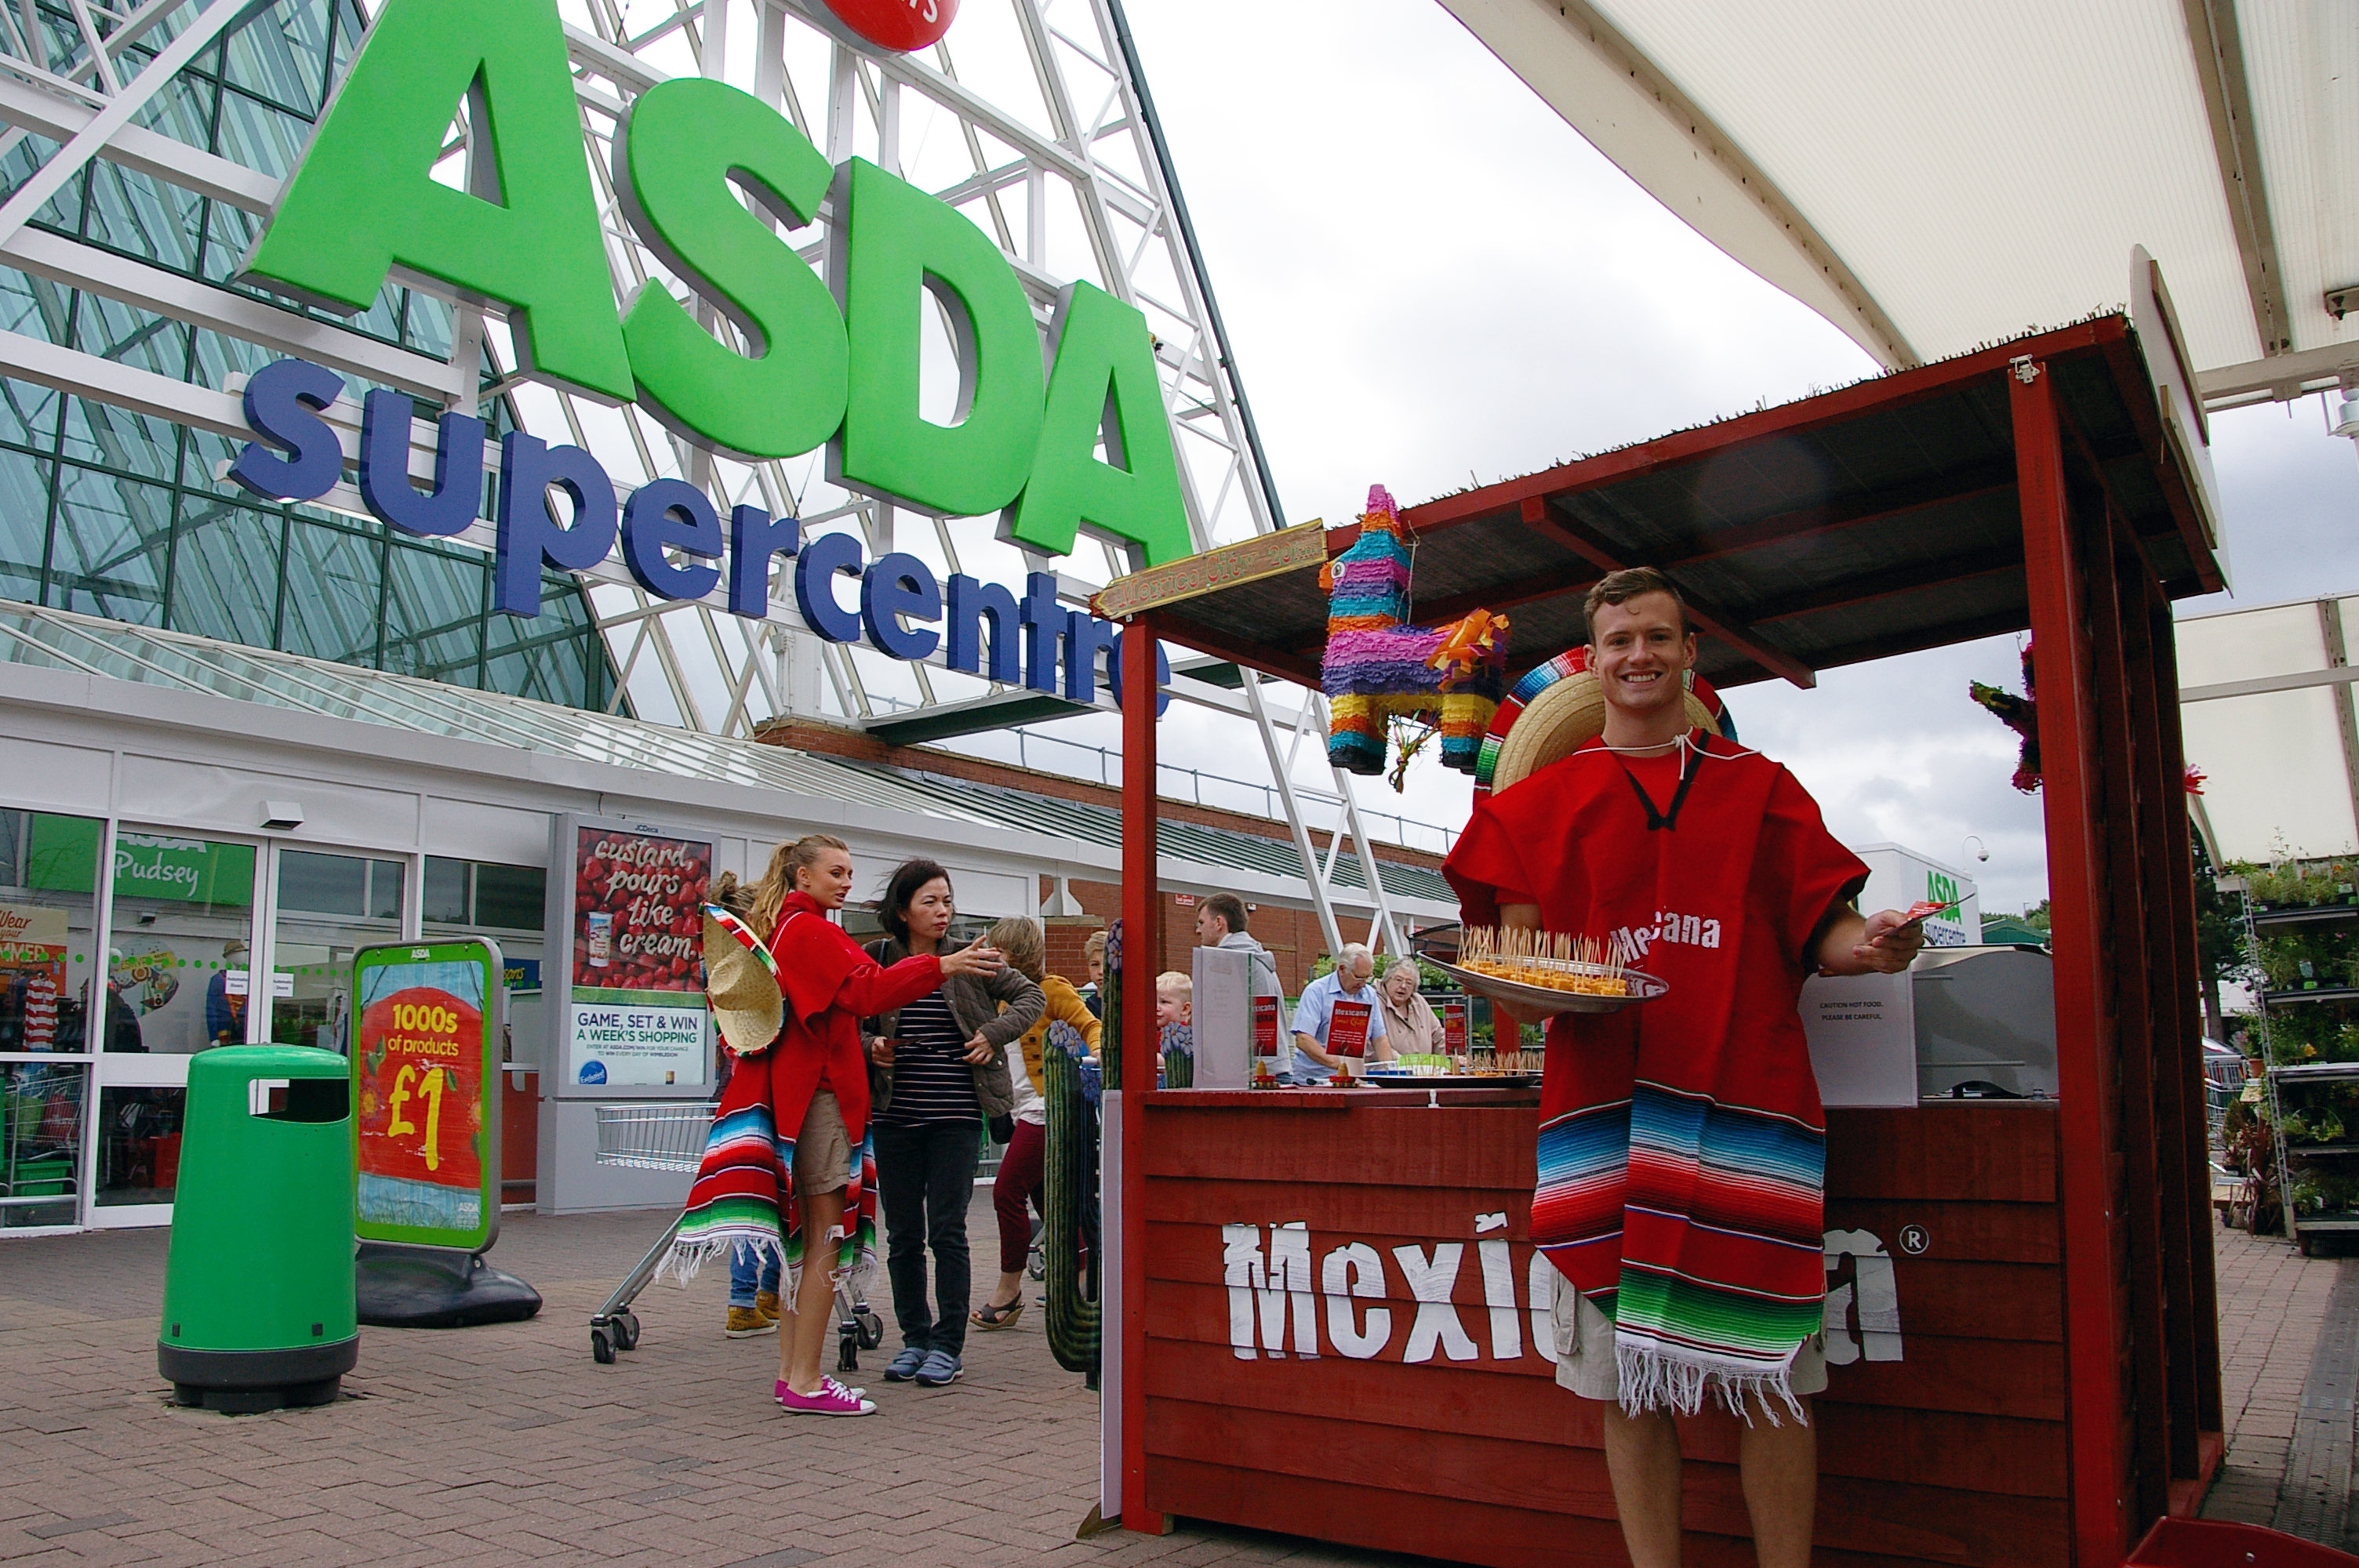 Product sampling in Asda supermarkets for Mexicana Cheese Product, Asda marketing, shopper marketing agency, retail marketing agency, examples